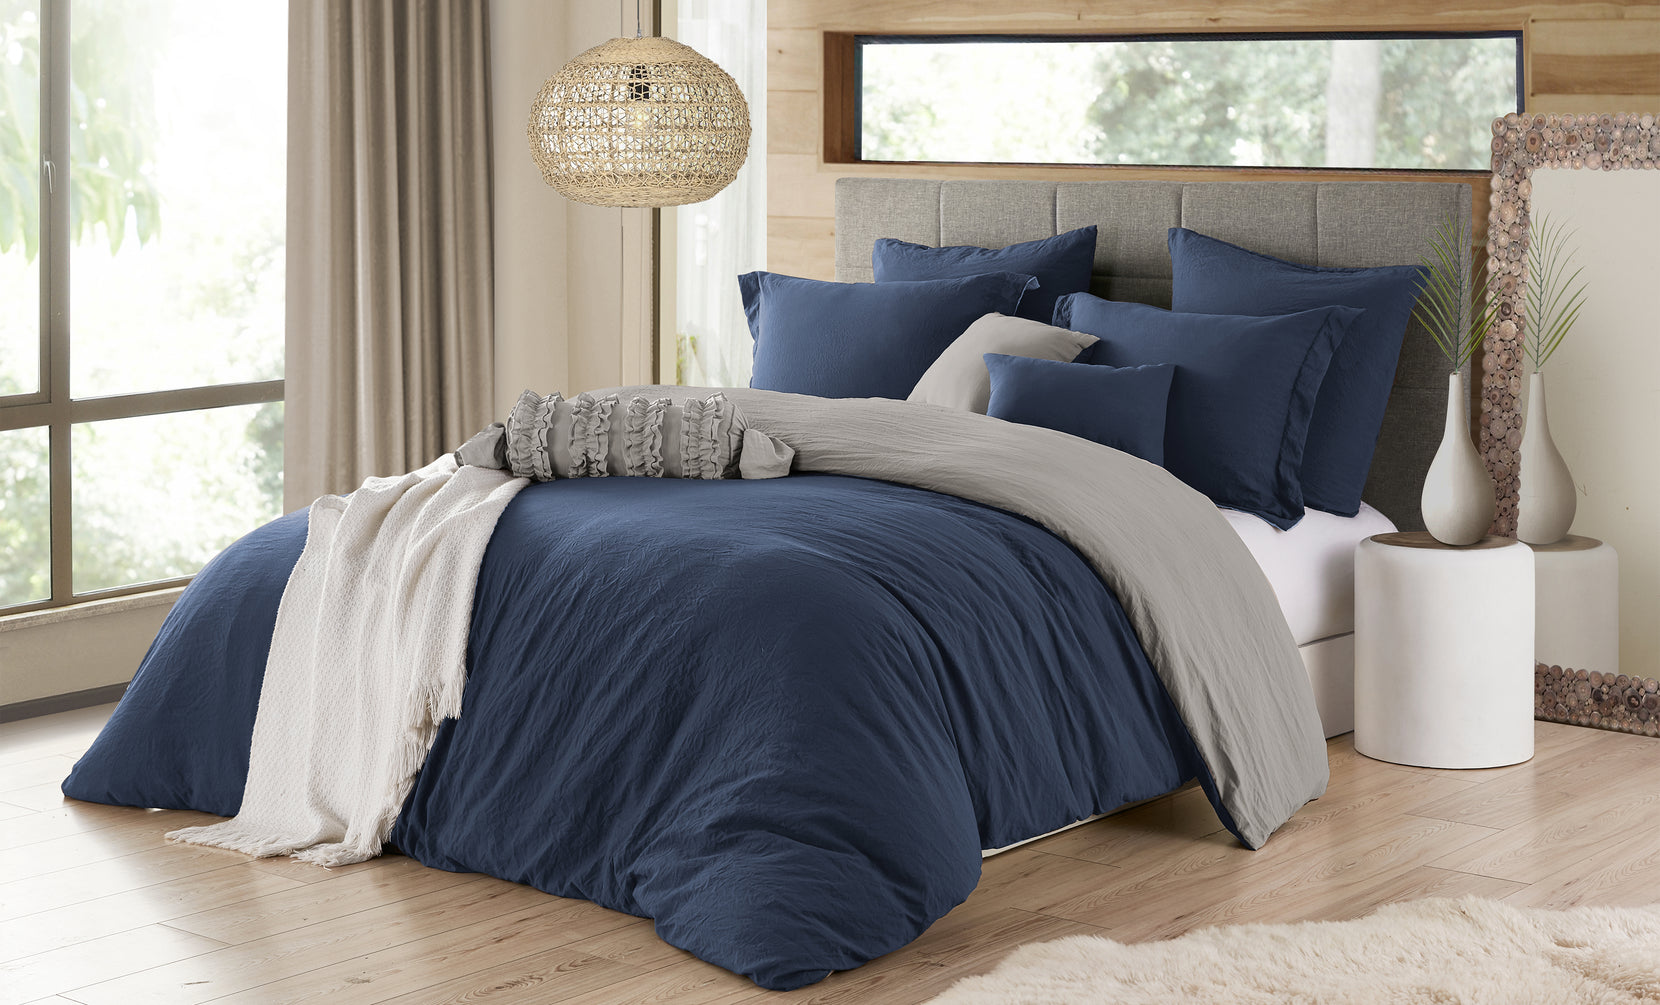 Reversible Crinkle Duvet Cover Set (2- or 3-Piece)